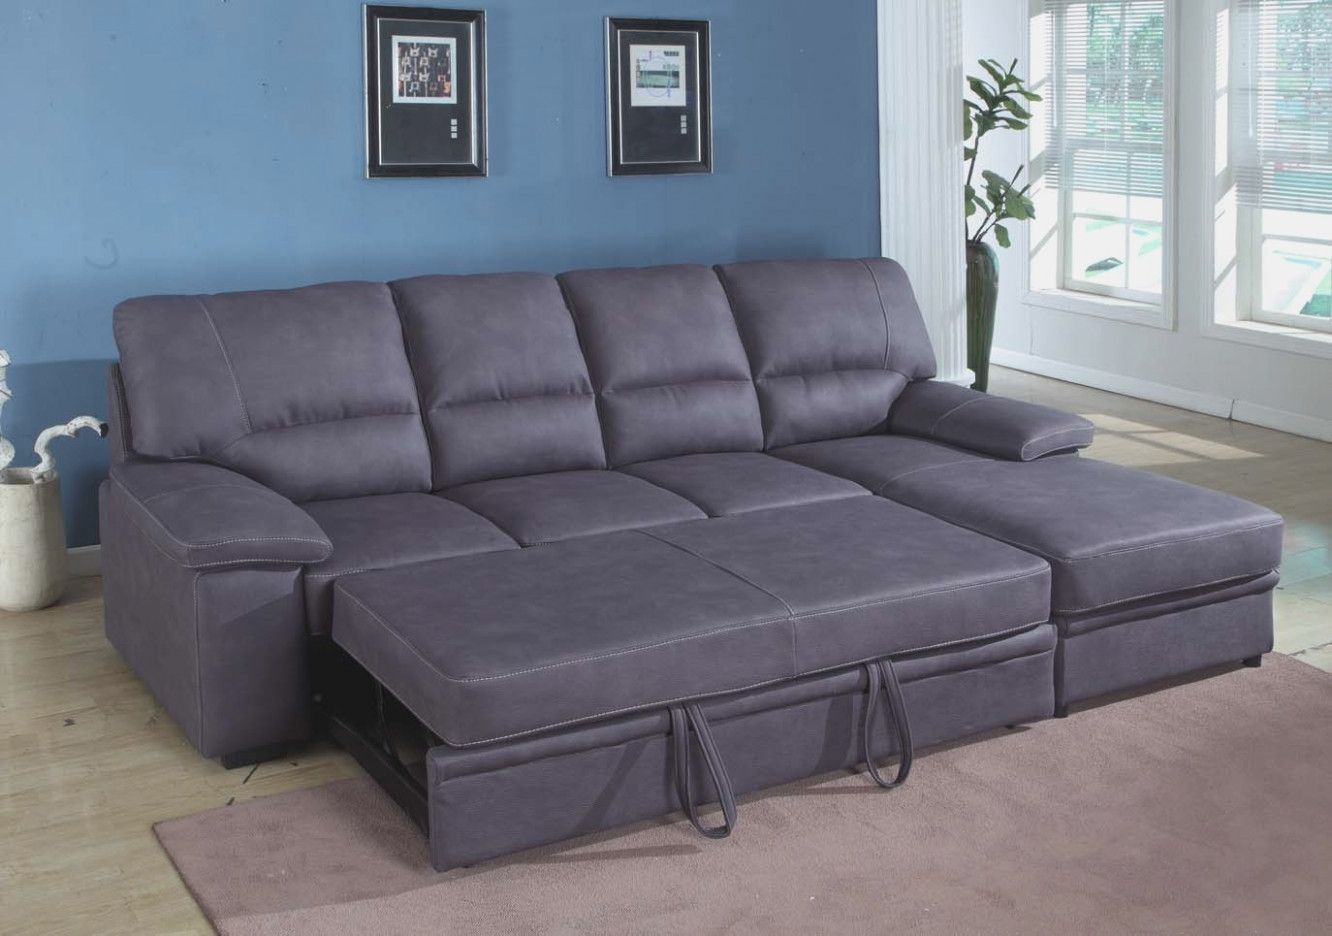 Grey Sectional Sleeper Sofa | Thesofasite.co with Arrowmask 2 Piece Sectionals With Laf Chaise (Image 8 of 30)